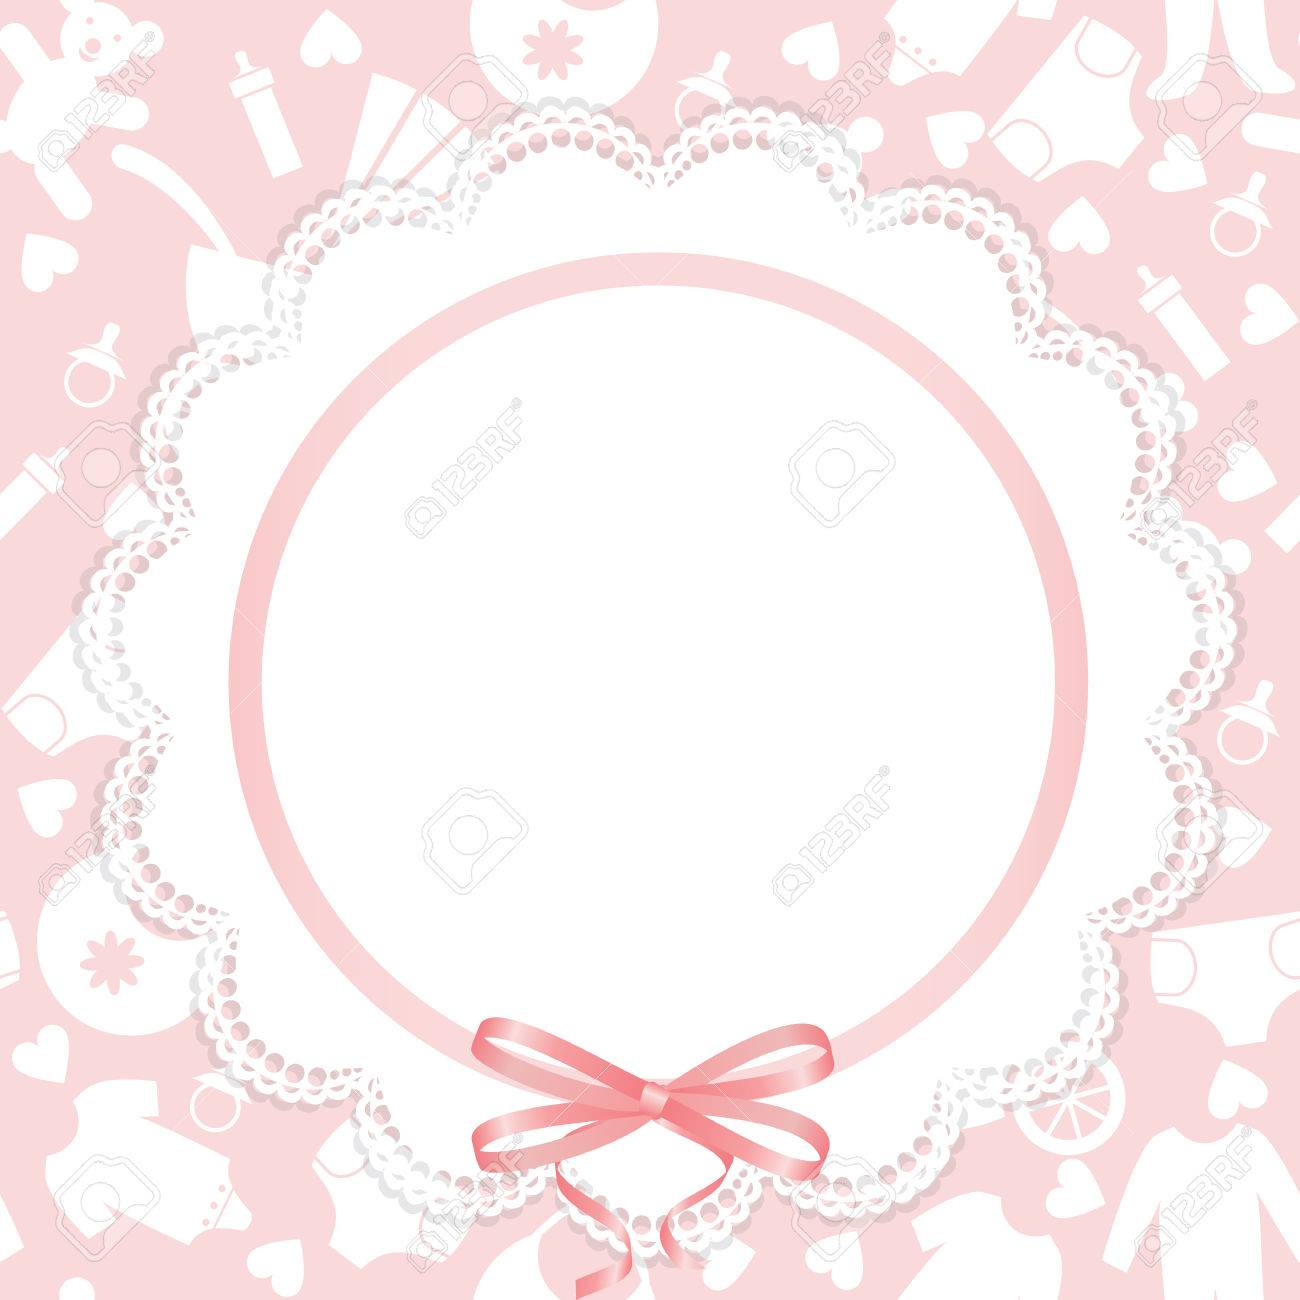 Greeting Or Invitation Card For Baby Shower Royalty Free Cliparts